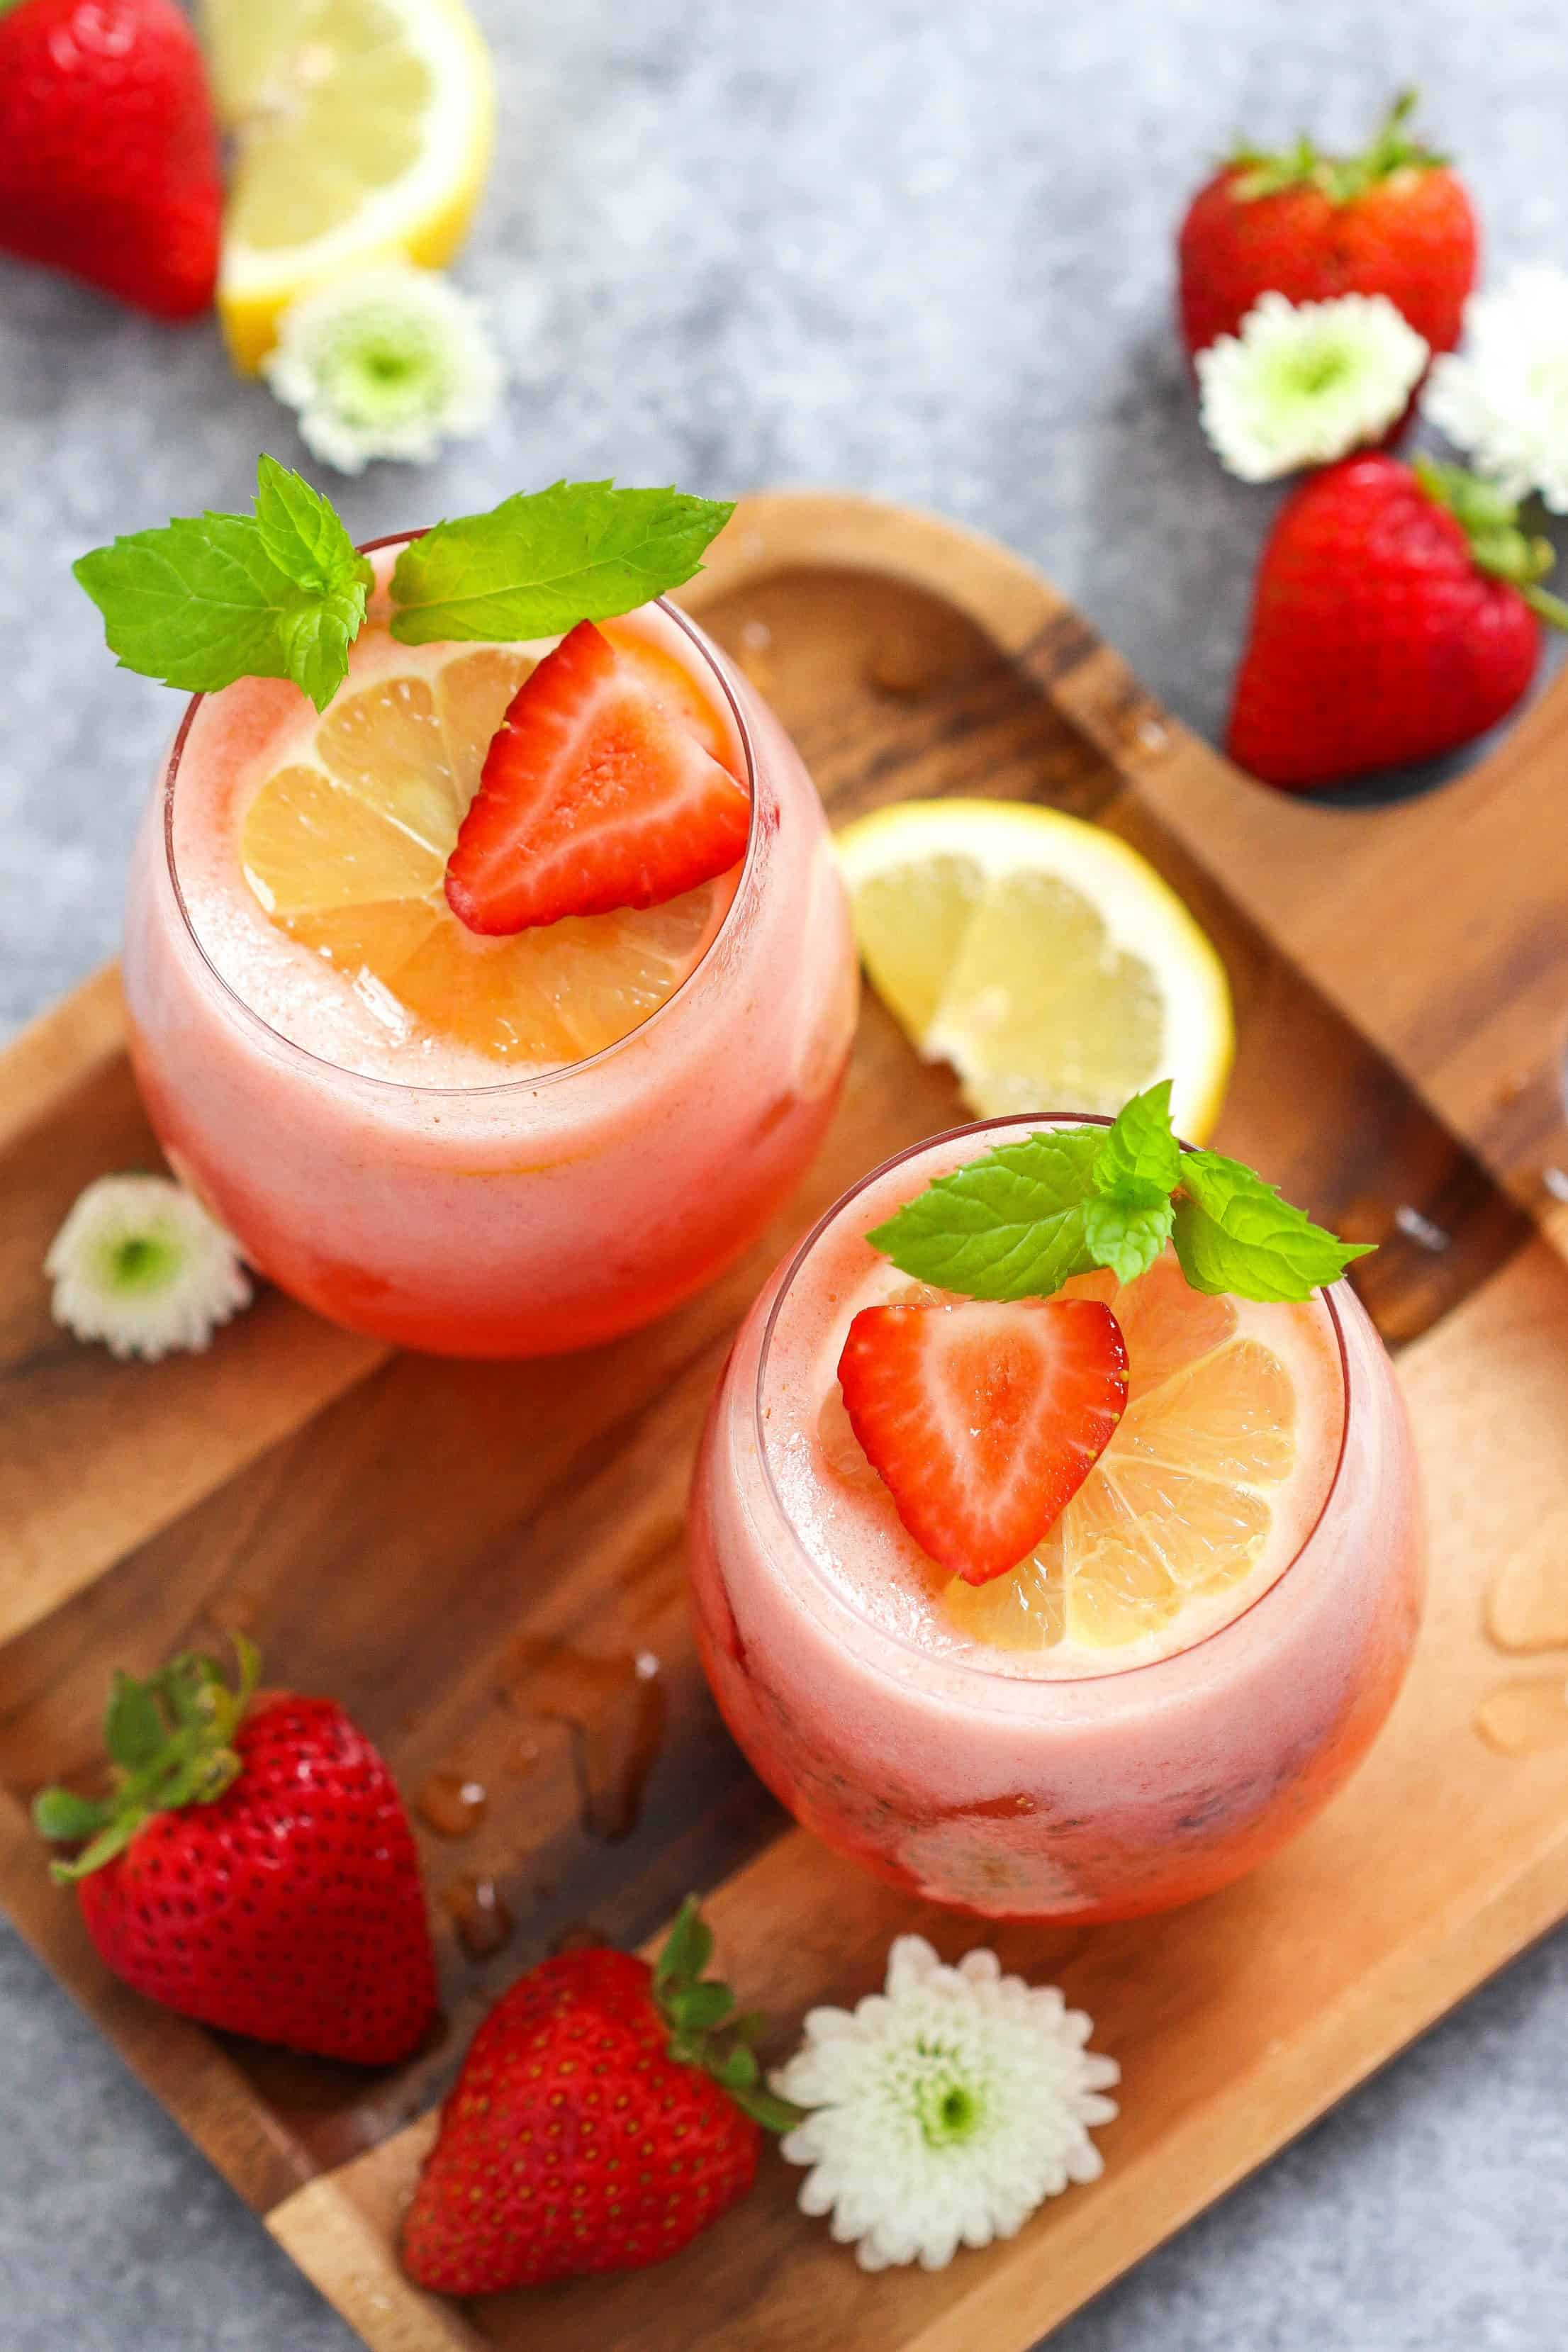 Homemade Chia Seed Drink- Strawberry Lemonade with Chia Seeds